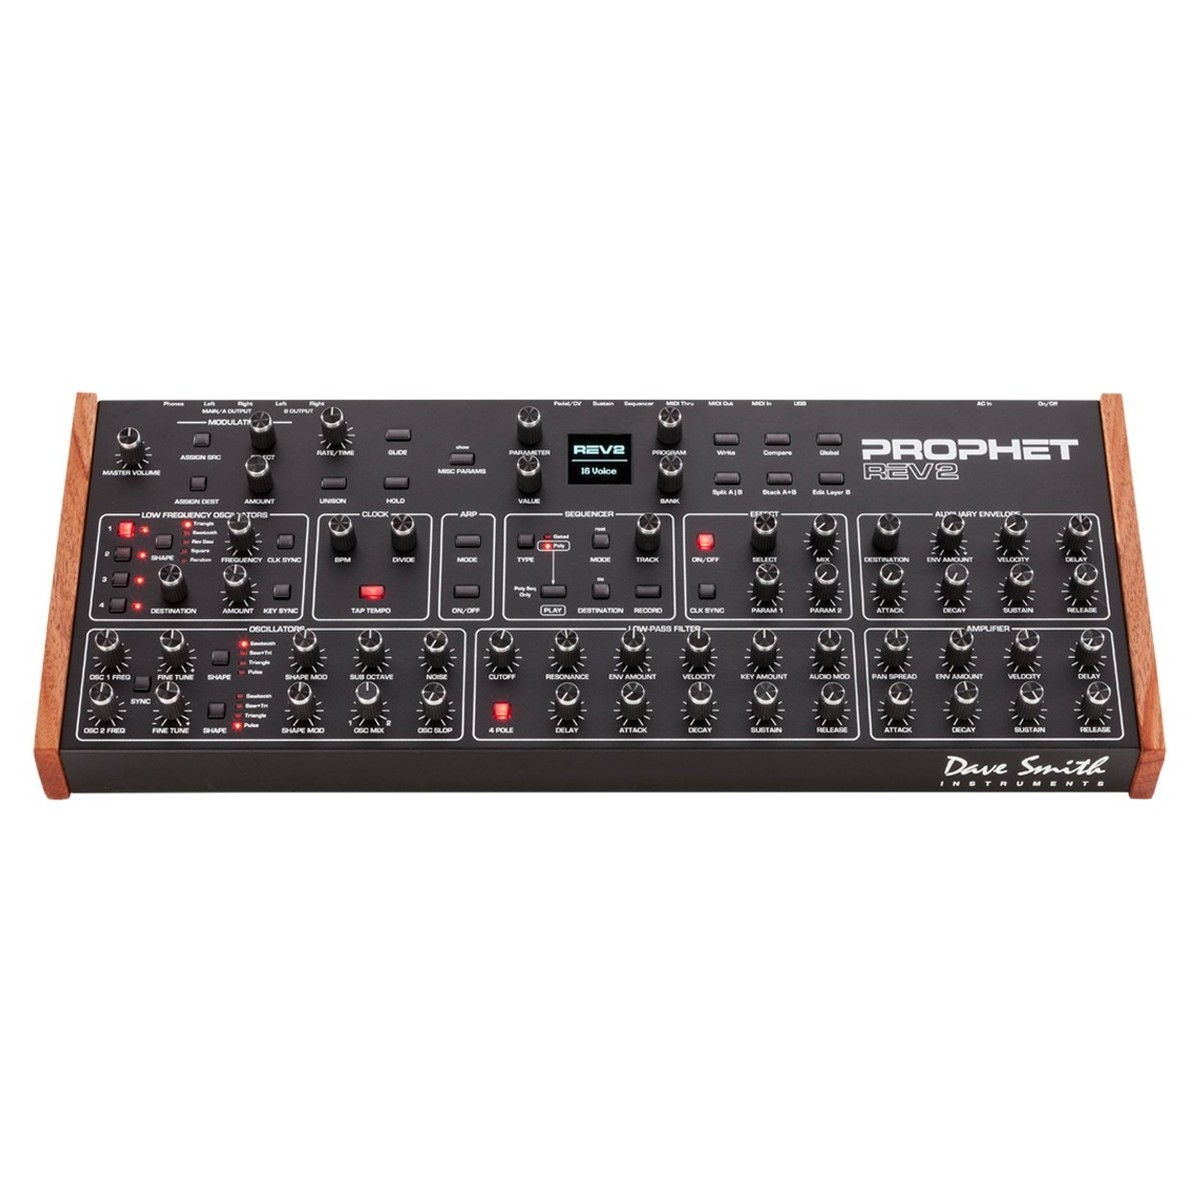 dave smith prophet rev2 8 voice module b stock at gear4music. Black Bedroom Furniture Sets. Home Design Ideas